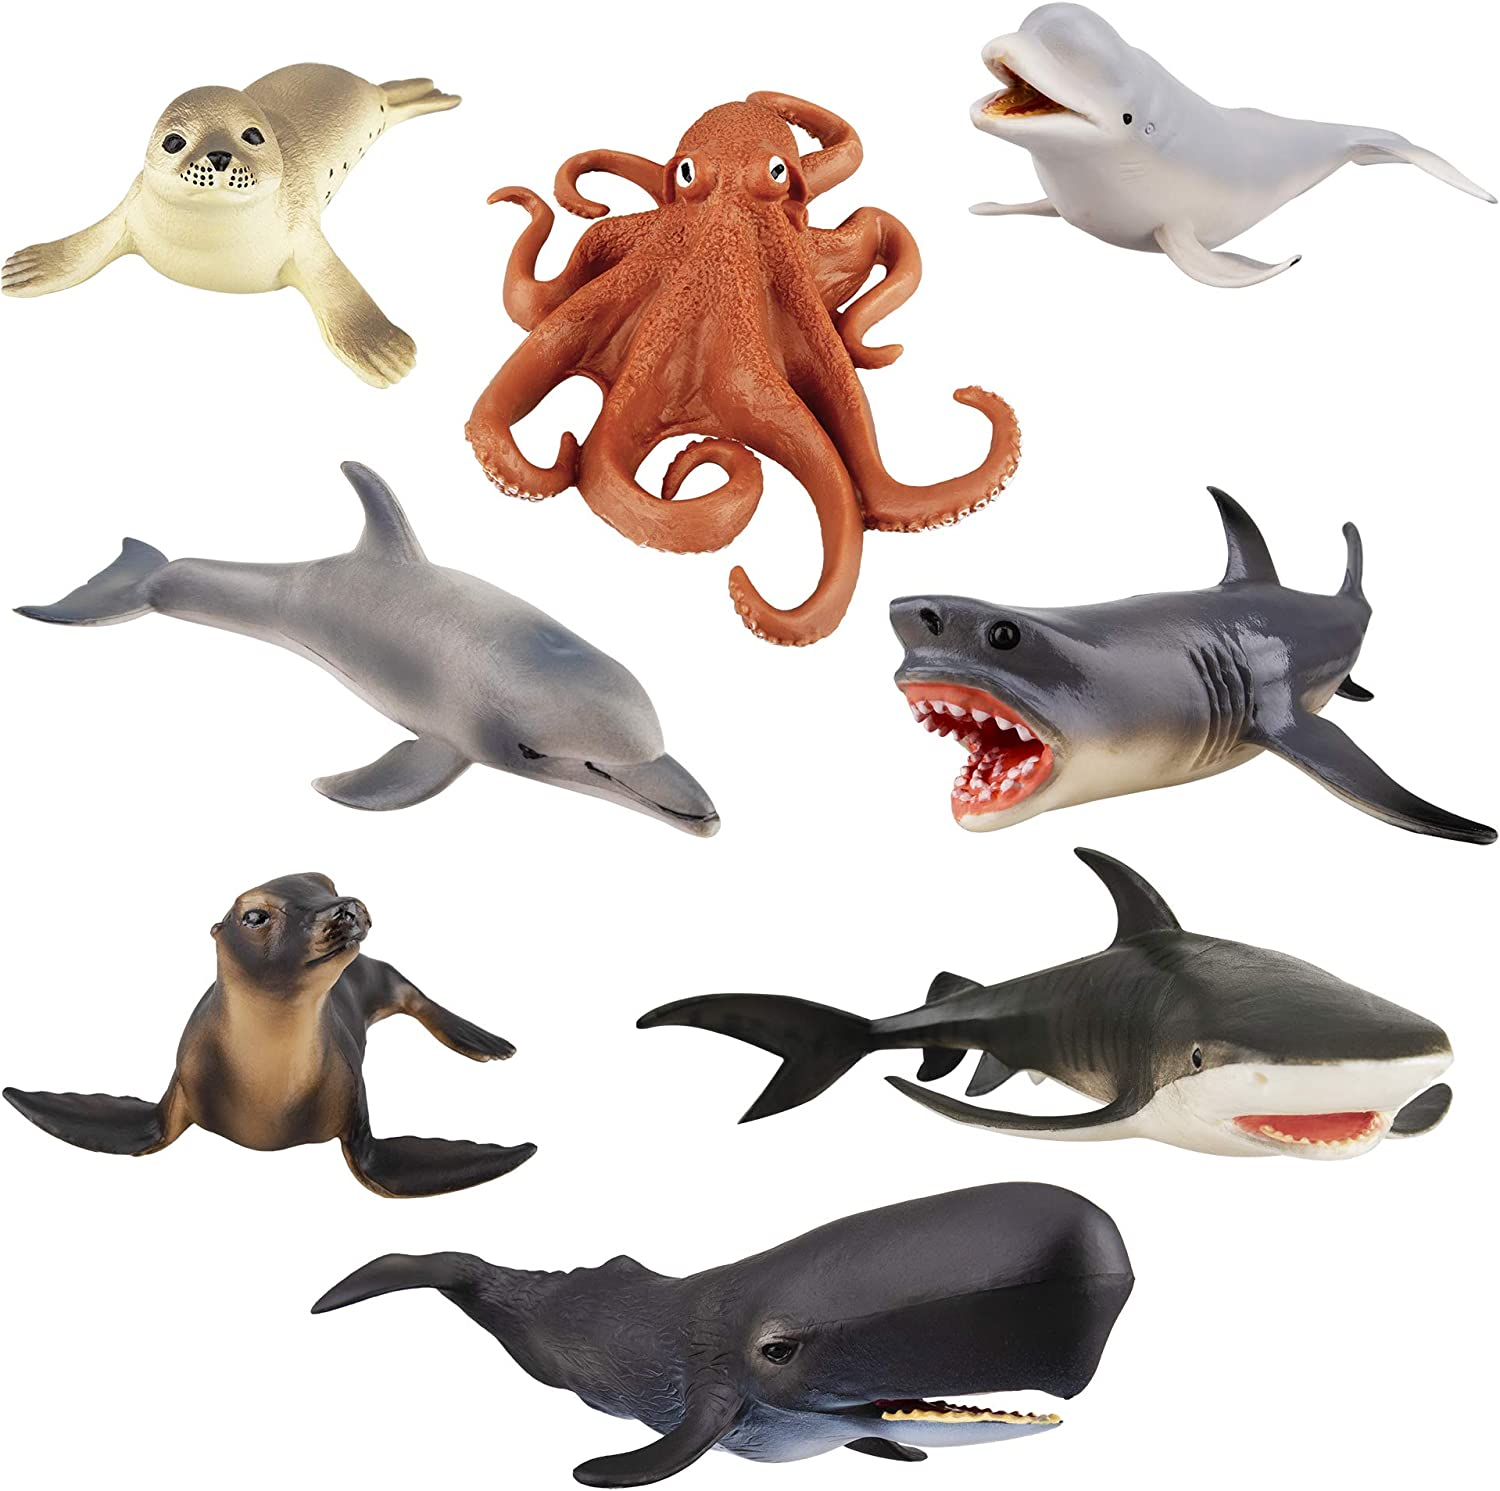 "TOYMANY 8PCS 4-8"" Large Sea Ocean Animals Figurines Bath Toy, Plastic Shark Whale Animals Figures Set Includes Beluga Whale,Sharks,Dolphin, Baby Shower Toy Cake Toppers Birthday Gift for Kids Toddlers"